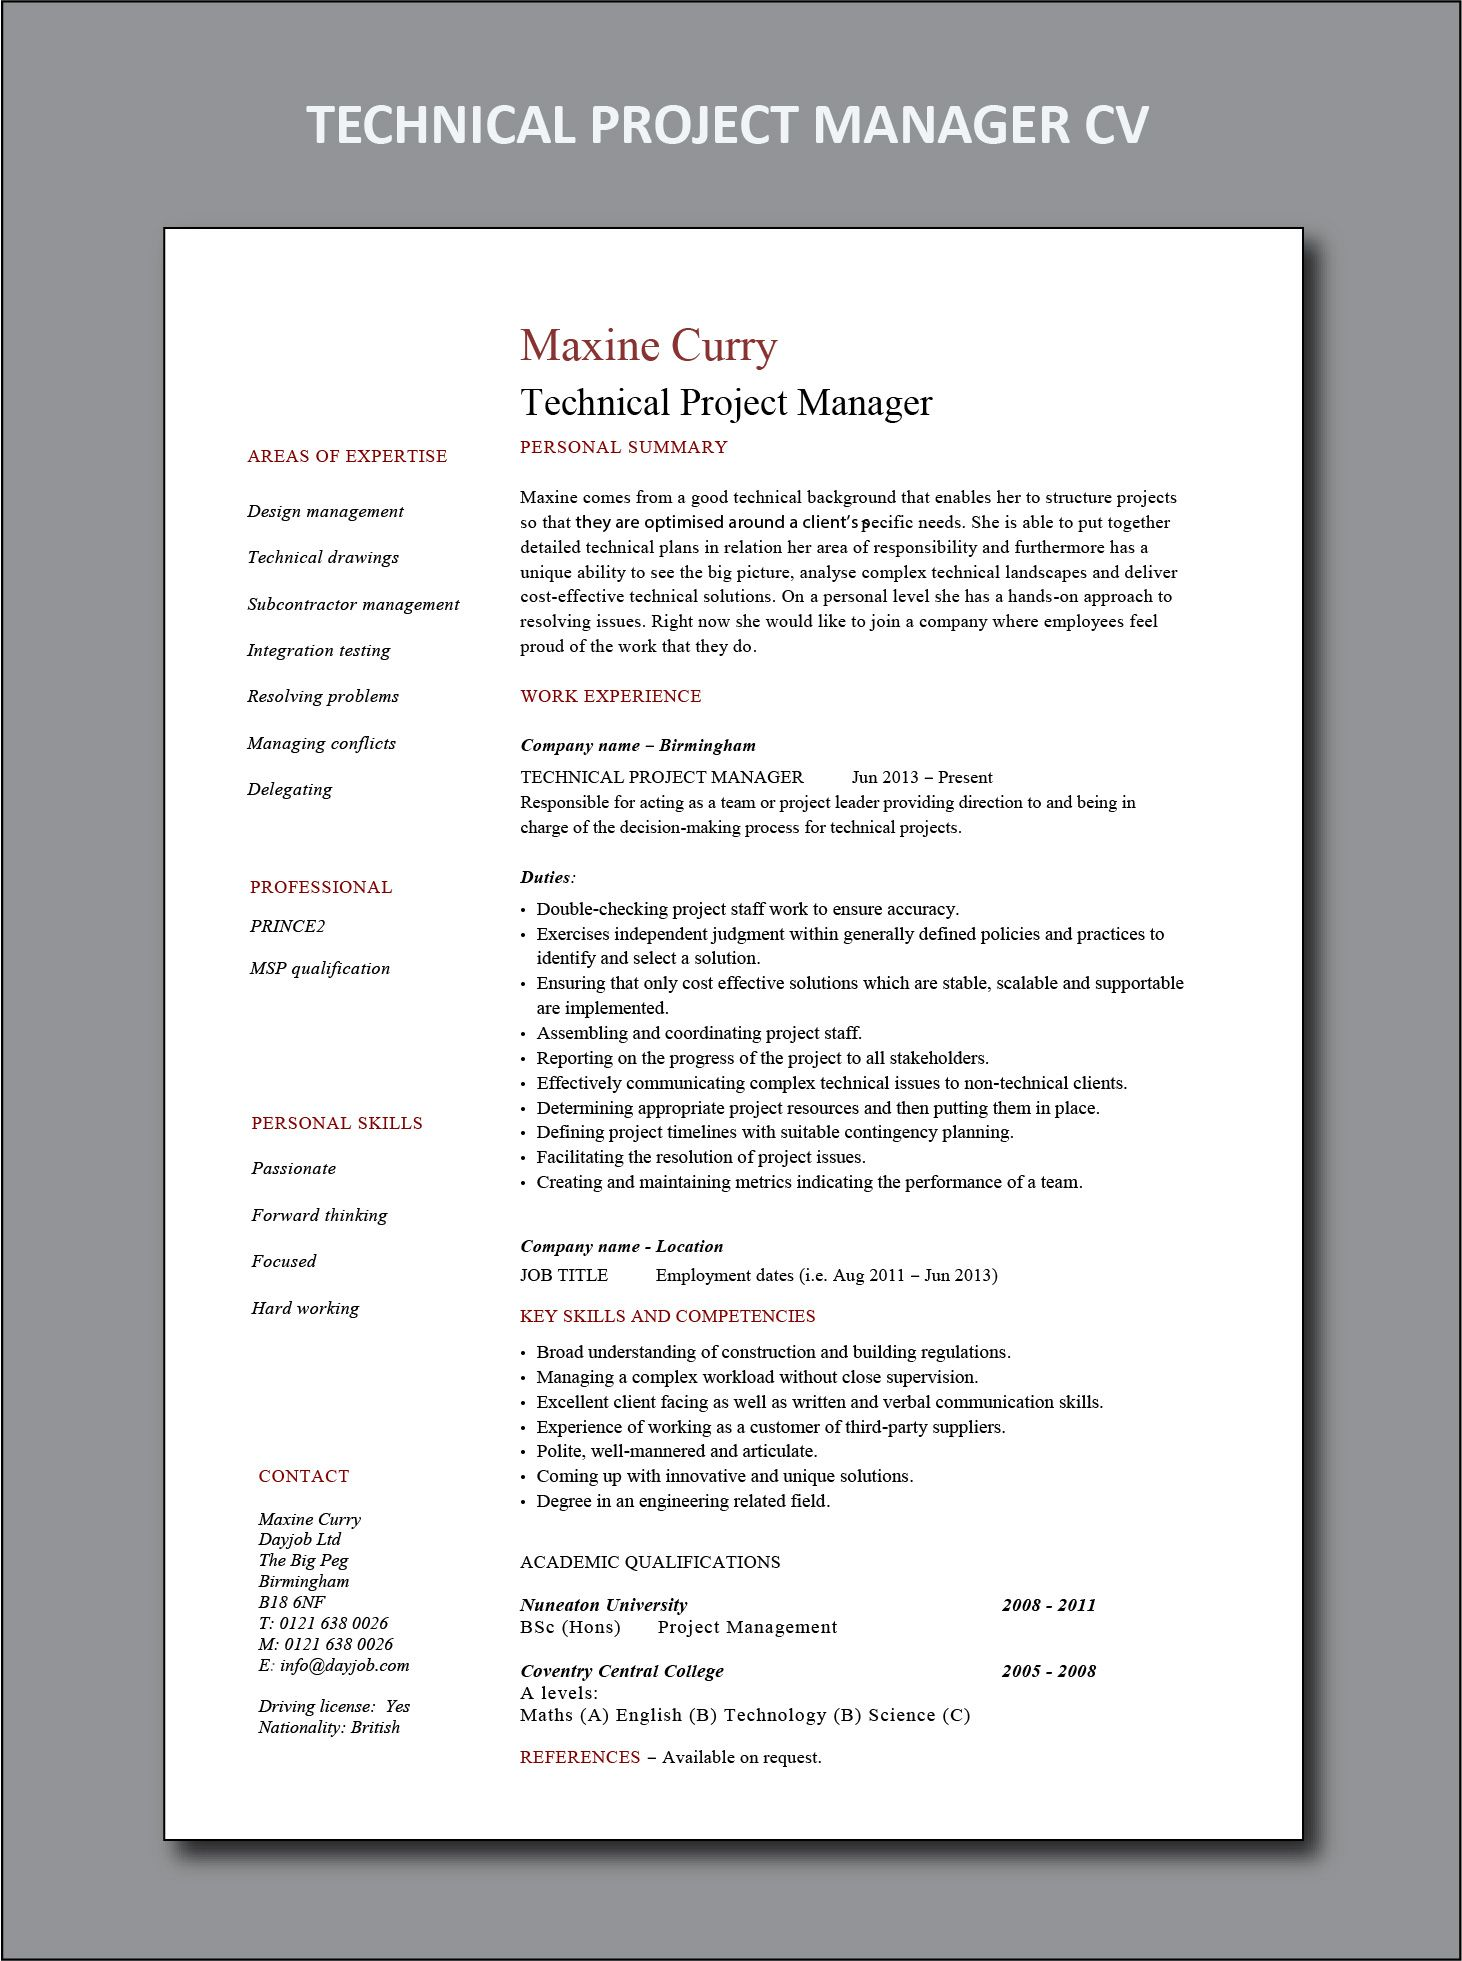 TECHNICAL PROJECT MANAGER CV AND RESUME EXAMPLE | Project ...